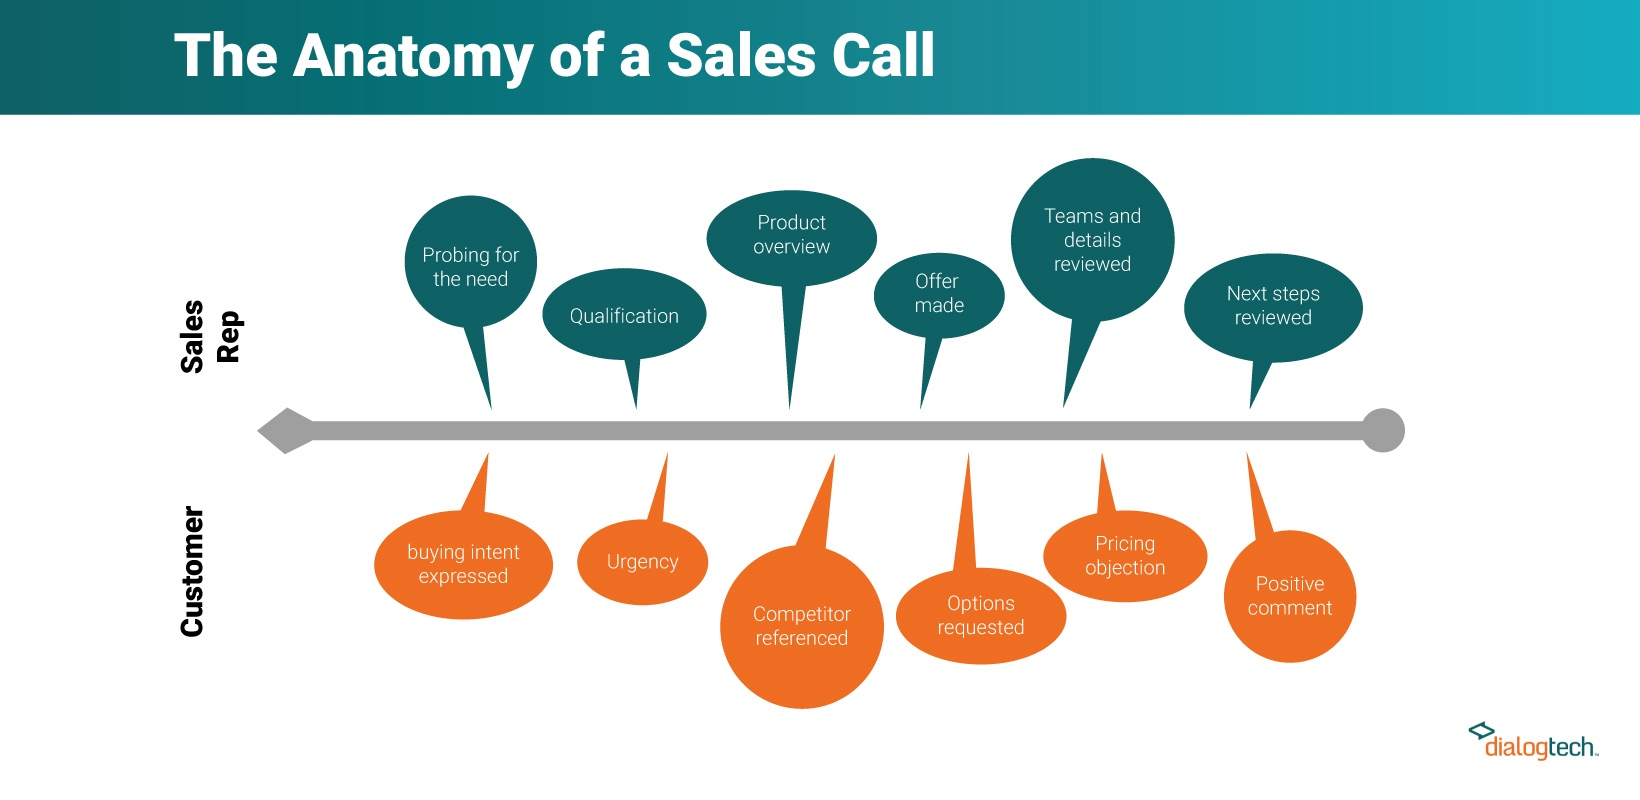 The anatomy of a sales call